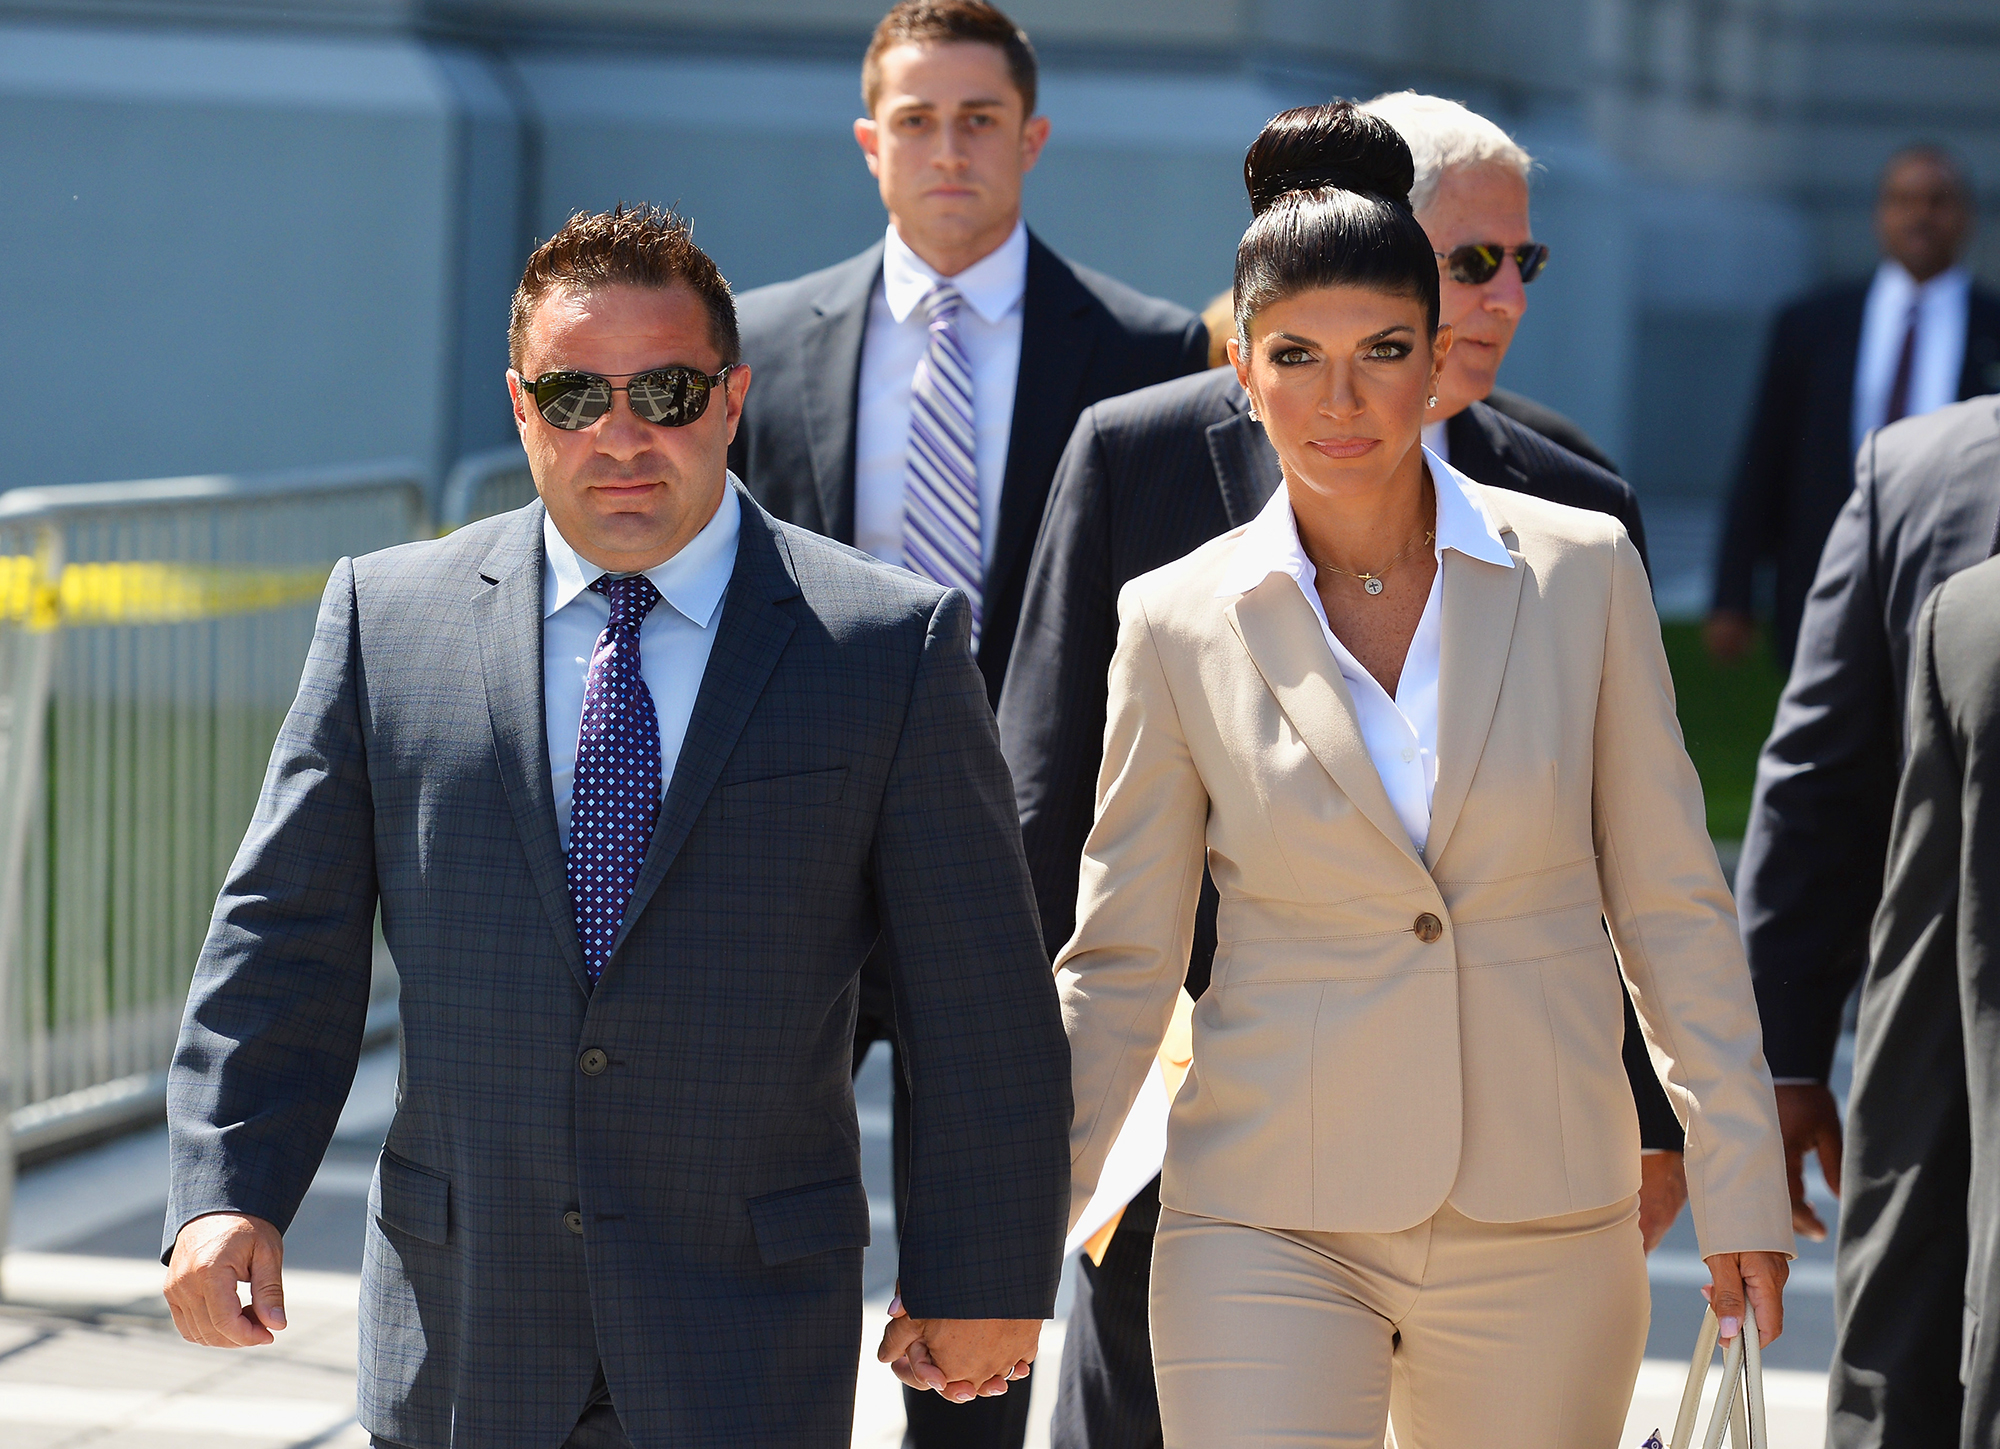 Everything Teresa Giudice Has Said About Joe Giudice's Deportation - Four days after a judge ordered Joe to be deported during an October 2018 court hearing, Teresa took to Instagram for the first time to address the situation. She shared a mock photo of the Statue of Liberty crying and captioned it with a series of praying-hands emojis.